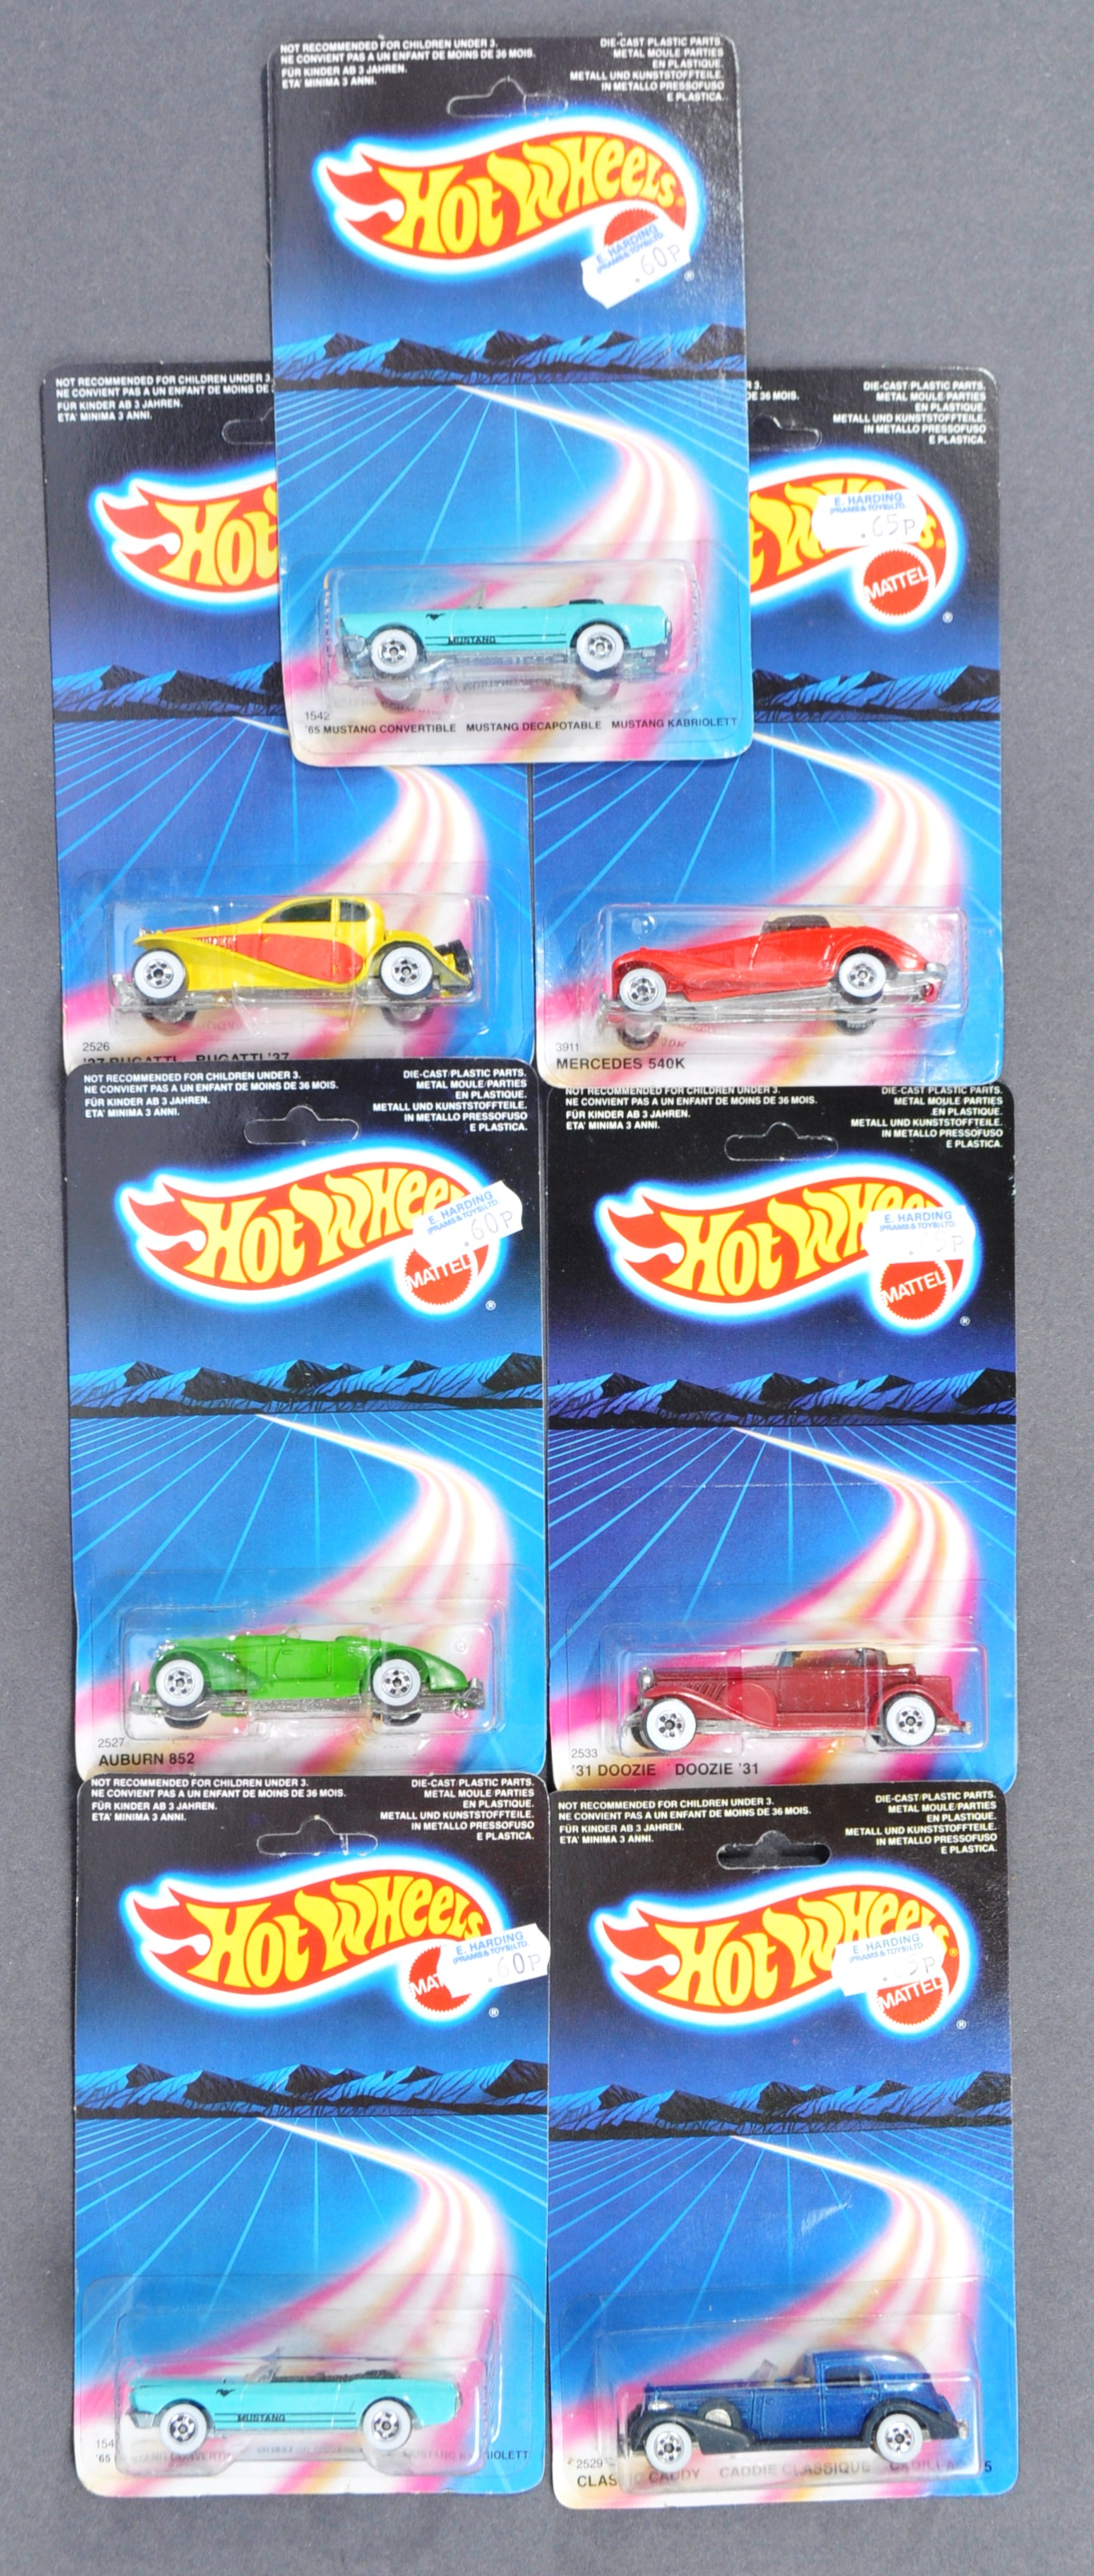 COLLECTION OF X7 VINTAGE MATTELL HOTWHEELS DIECAST CARS